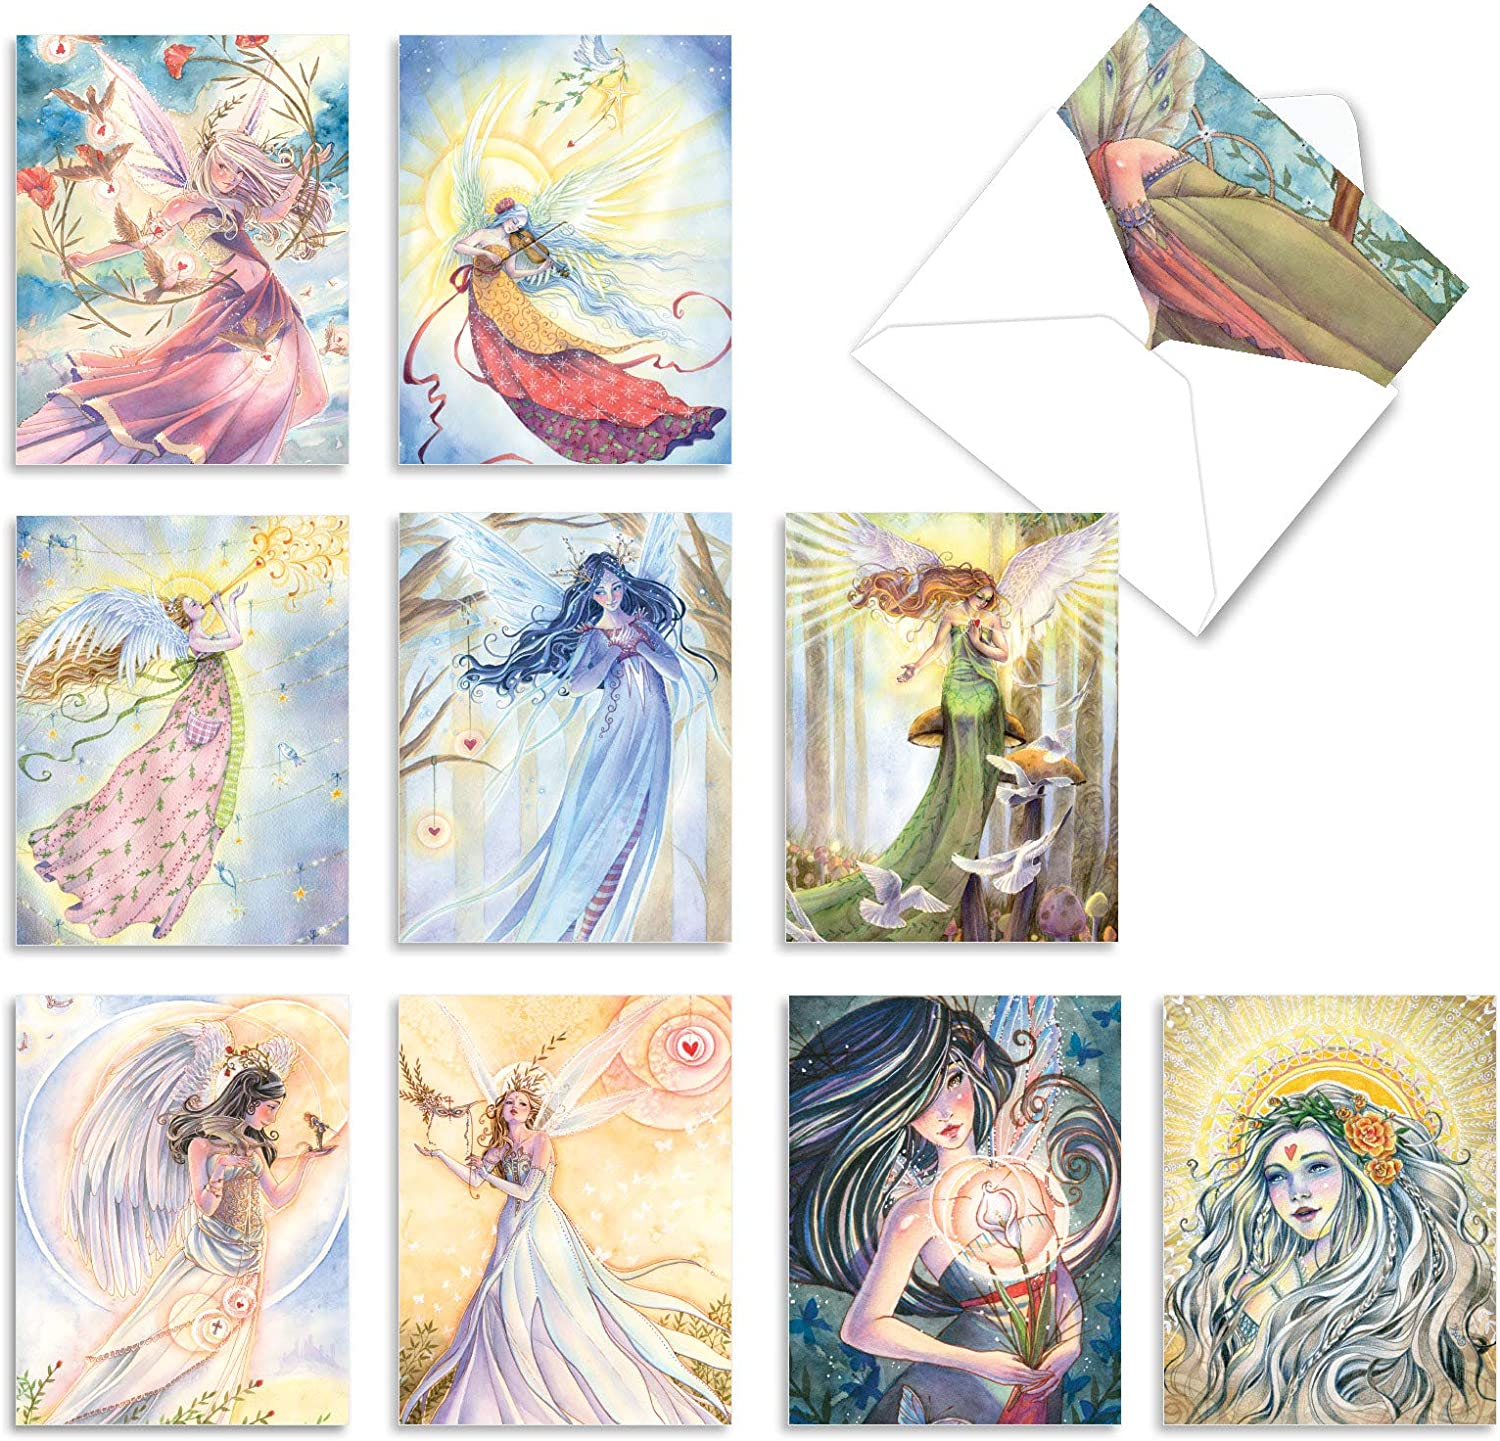 Winged Women' Boxed Set of 10 Thank You Cards with Envelopes and a Reusable Box, Fairy and Angel Mini Thank You Notes 4 x 5.12 inch, Fairies and Angels Gratitude Greeting Cards M2970